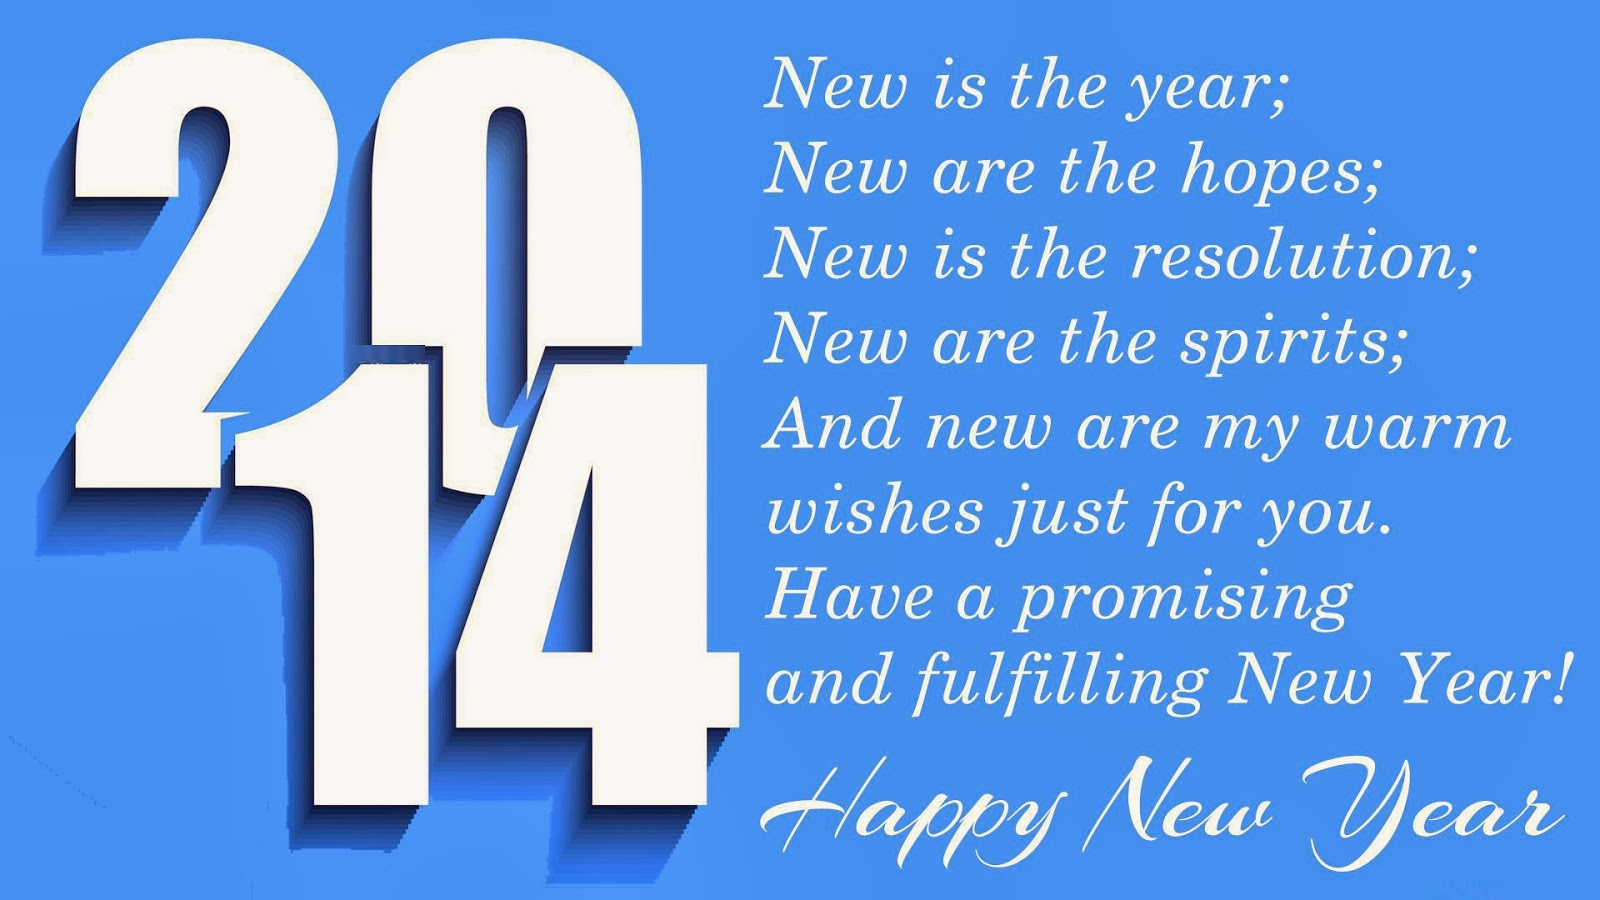 New Year 2014 Greetings With Special Message For Loved Ones New